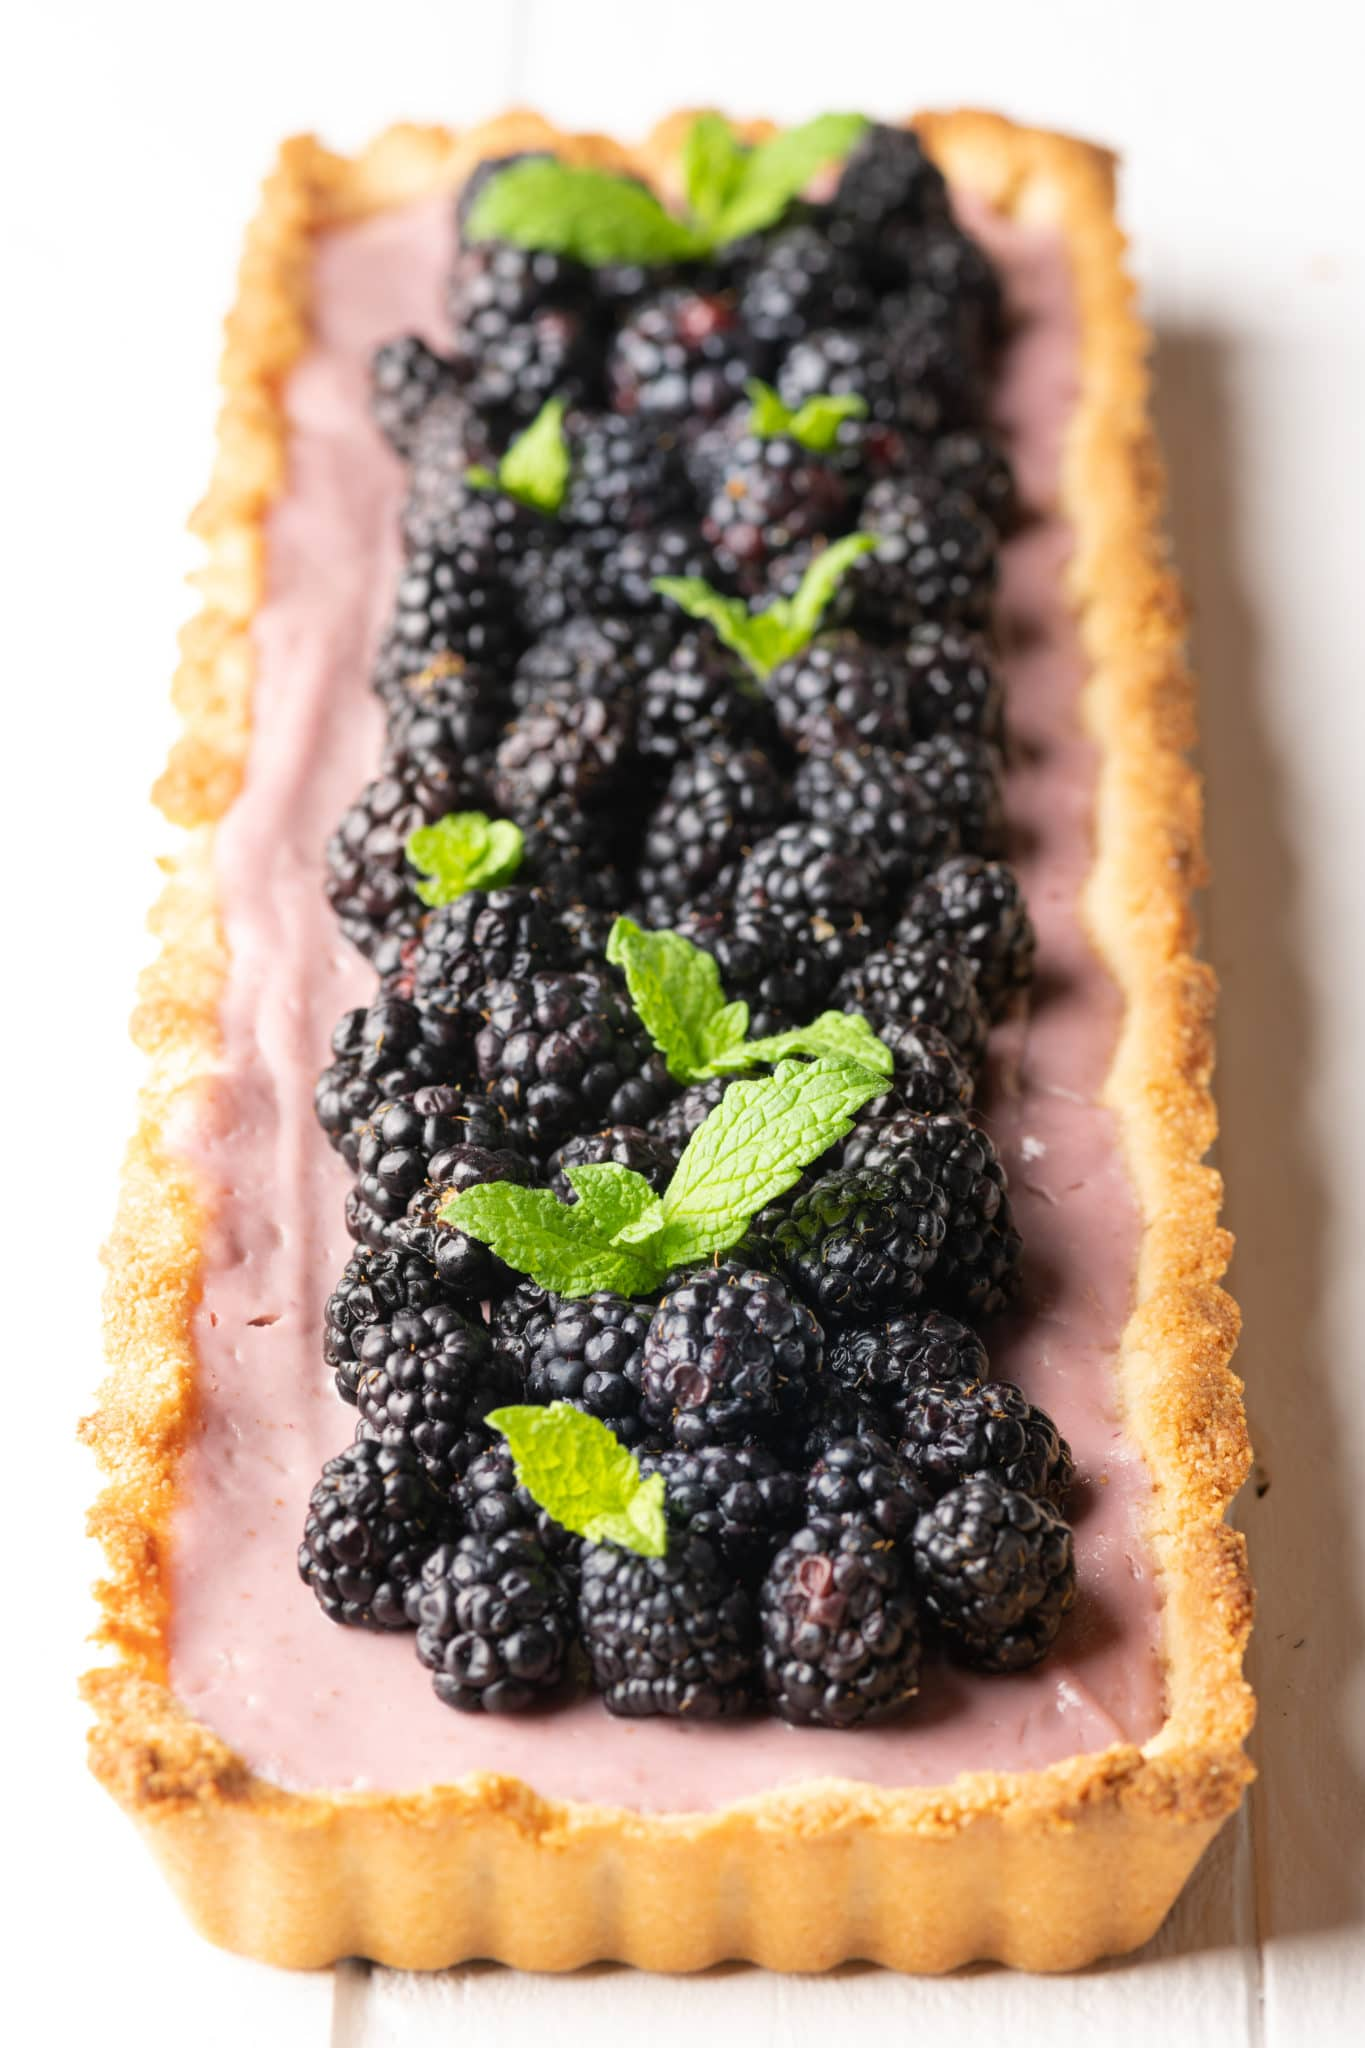 Rectangular shaped tart with golden crust and light purple filling topped with fresh blackberries and sprigs of mint.